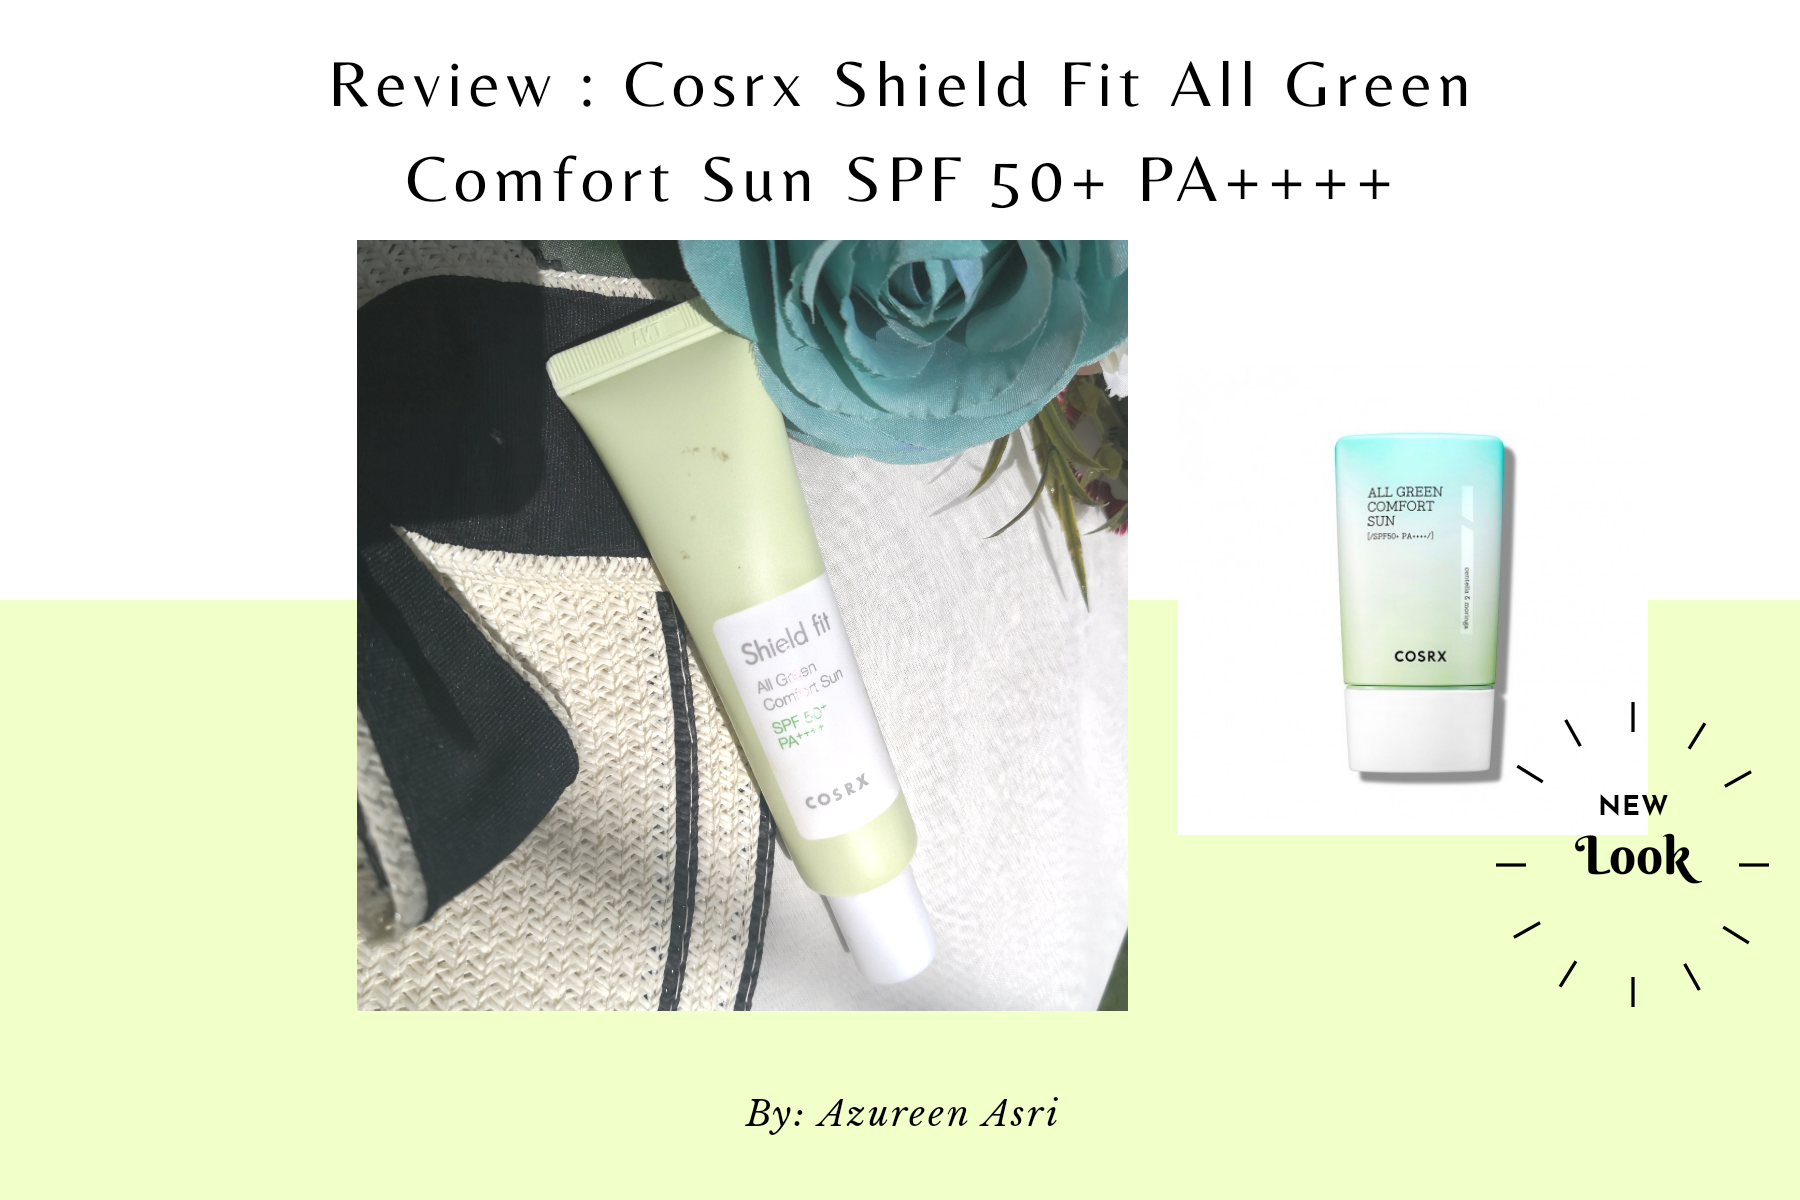 REVIEW | Cosrx Shield Fit All Green Comfort Sun SPF 50+ PA++++